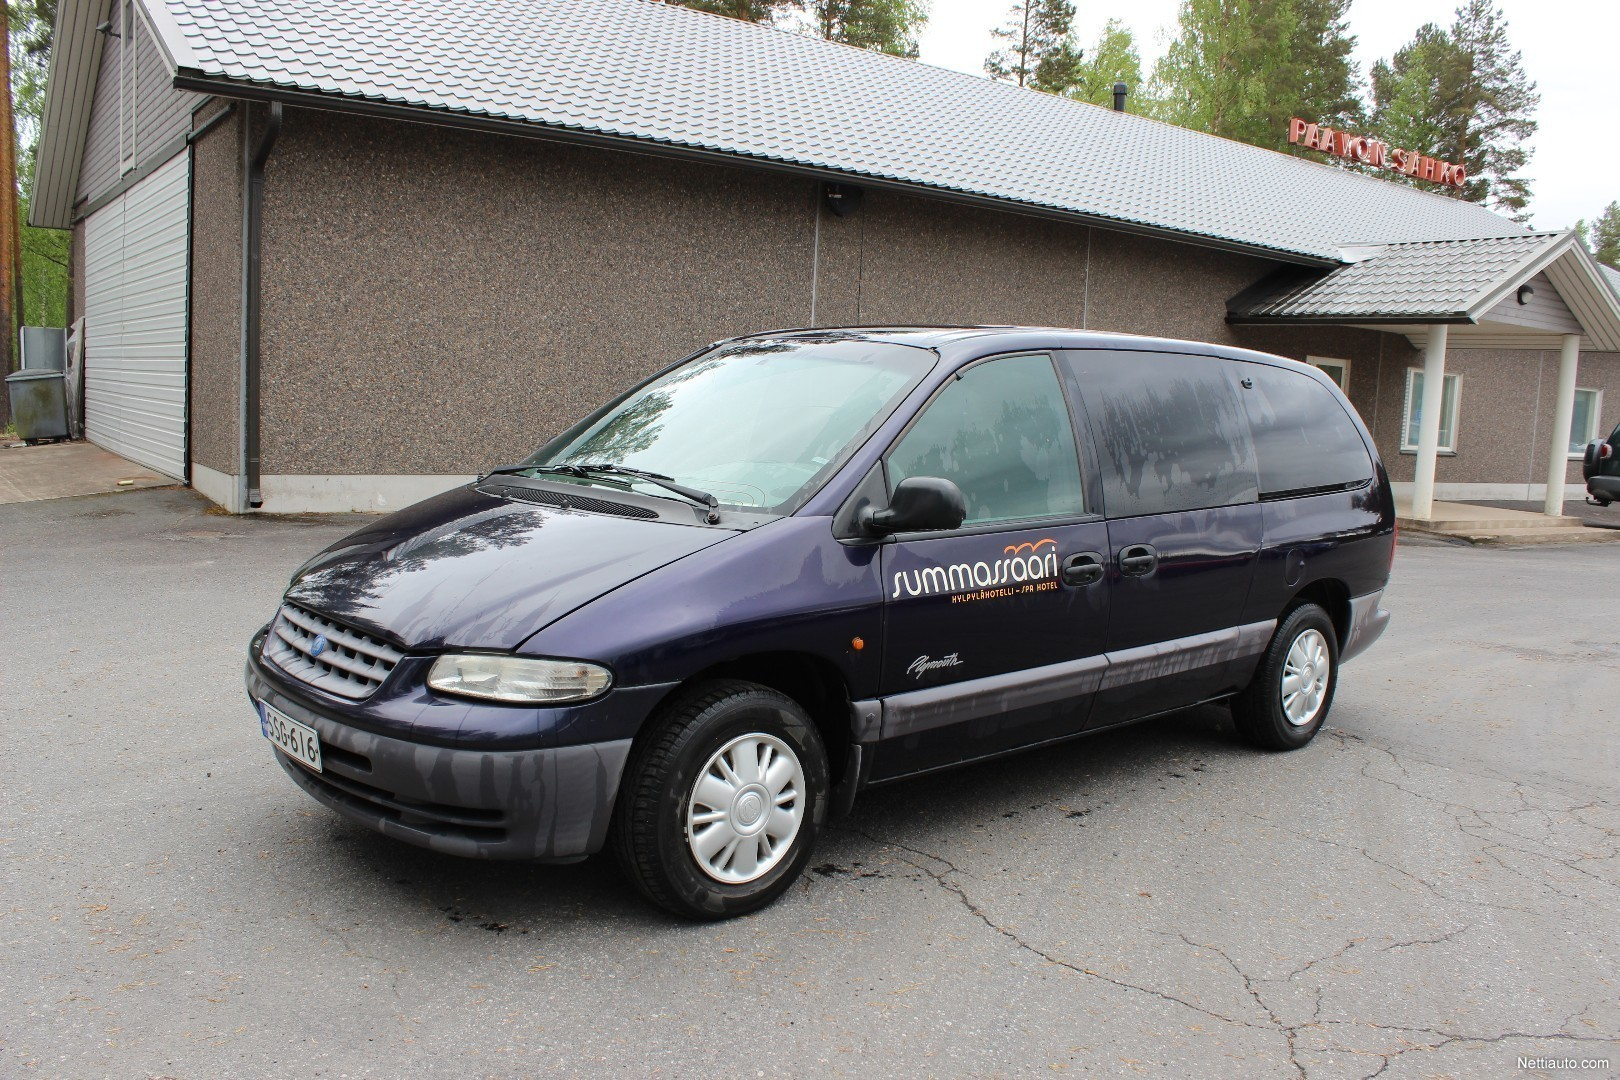 chrysler voyager 3 3 se v6 a 5d 7h mpv 1998 used vehicle nettiauto. Black Bedroom Furniture Sets. Home Design Ideas